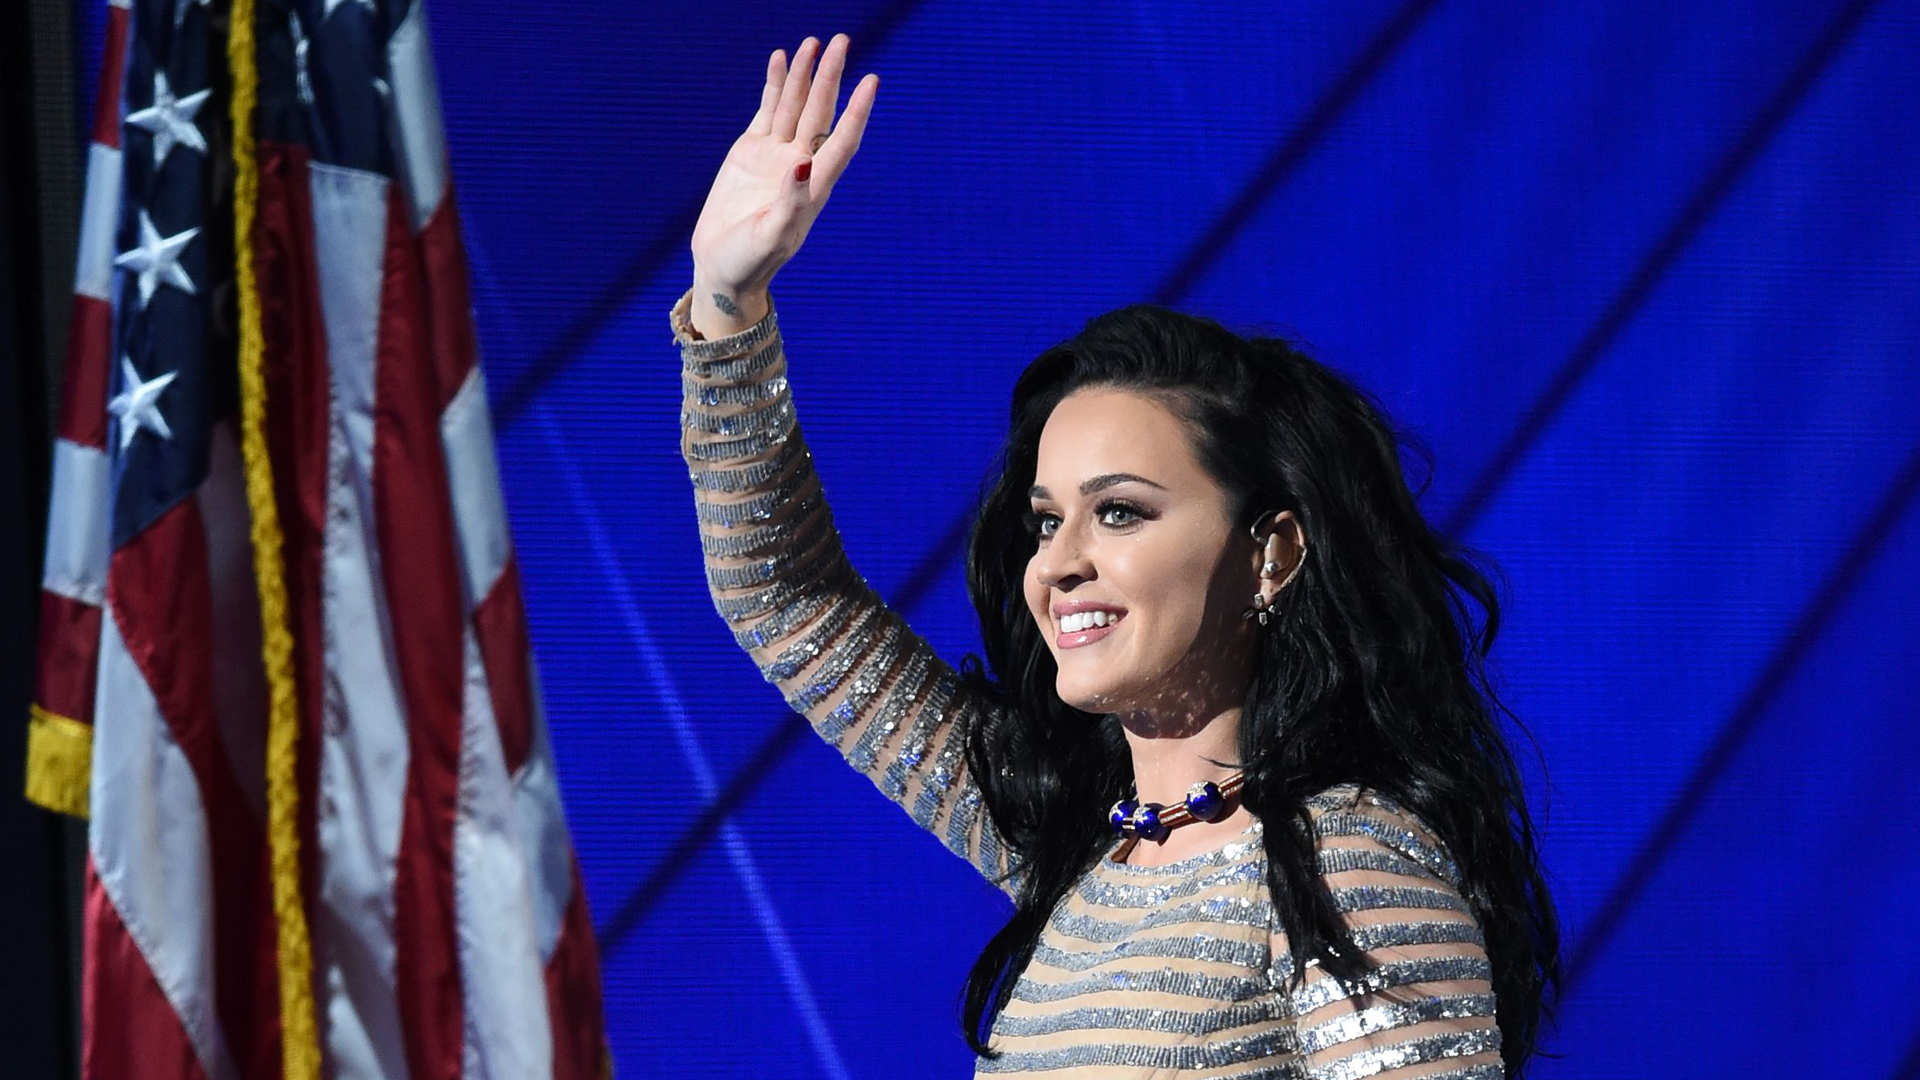 Singer Katy Perry performs during the final day of the 2016 Democratic National Convention on July 28, 2016, at the Wells Fargo Center in Philadelphia, Penn. (TIMOTHY A. CLARY/AFP/Getty Images)